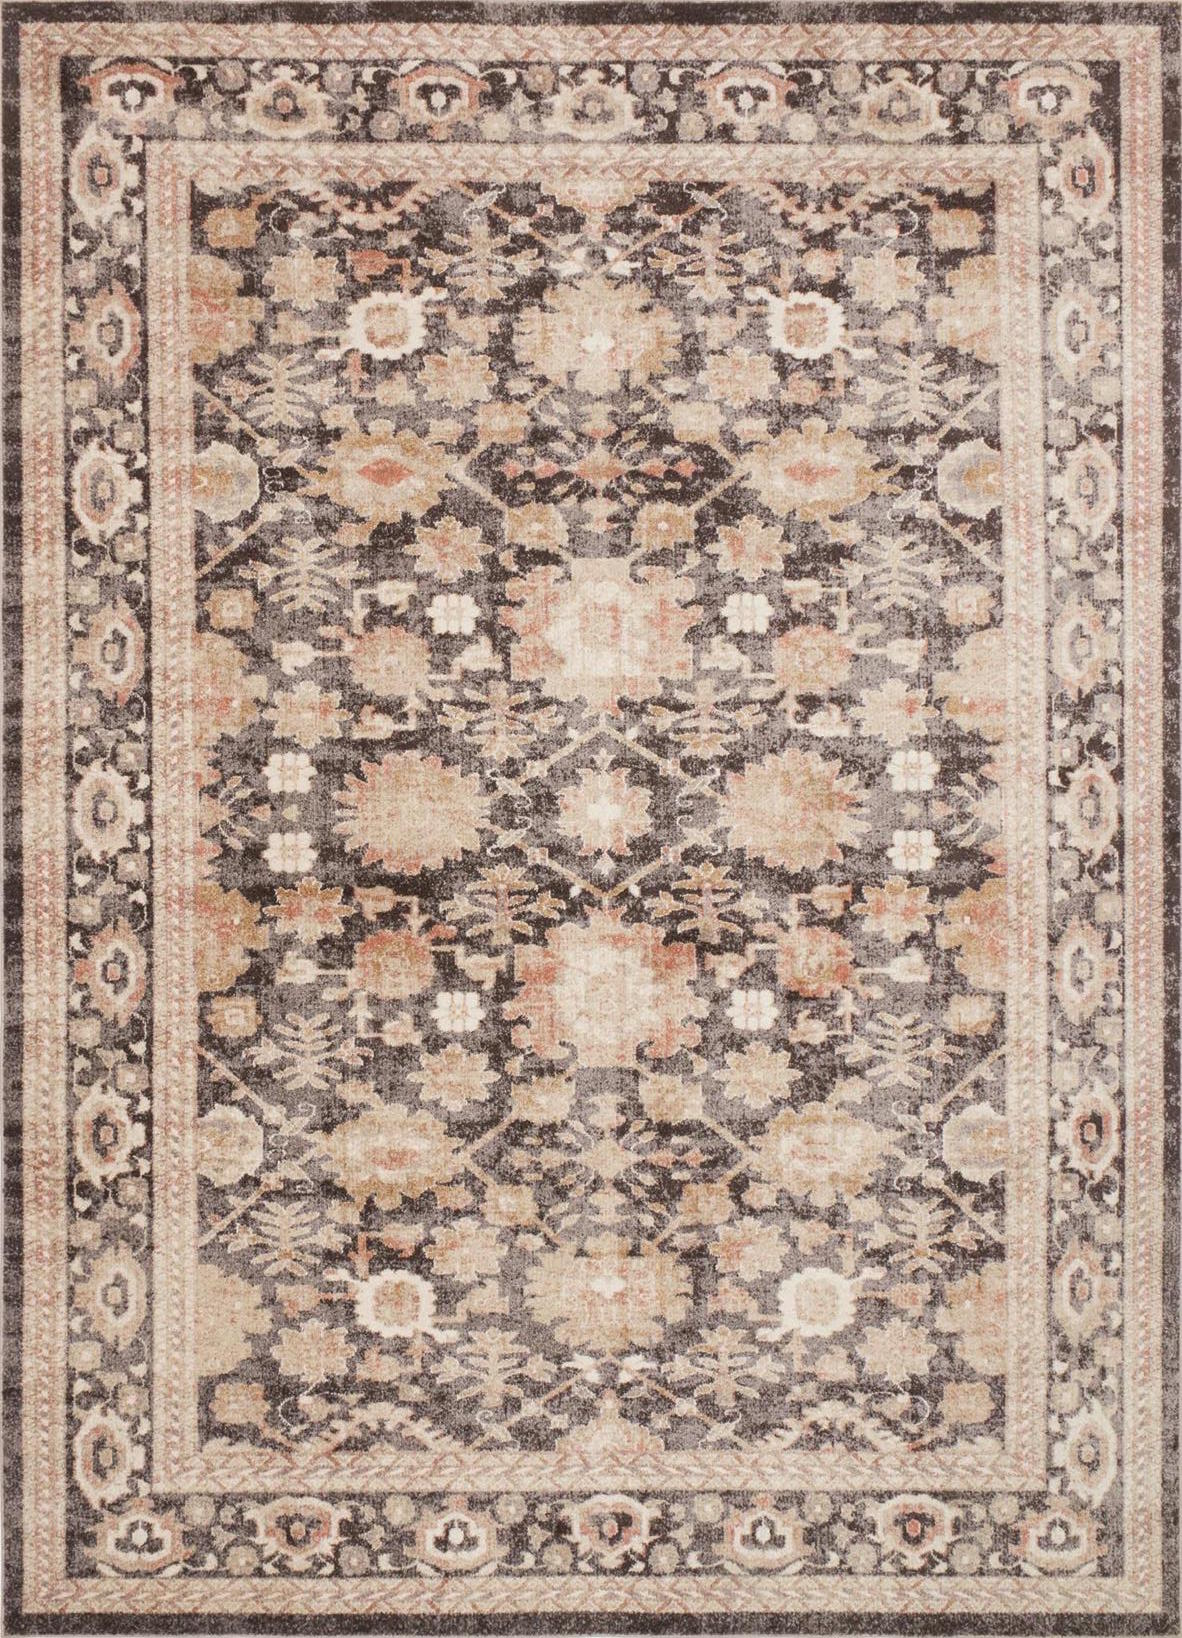 pdp magnolia added area rugs ocean to your home has living been kivi sandocean cart sand successfully gaines rug joanna by qty